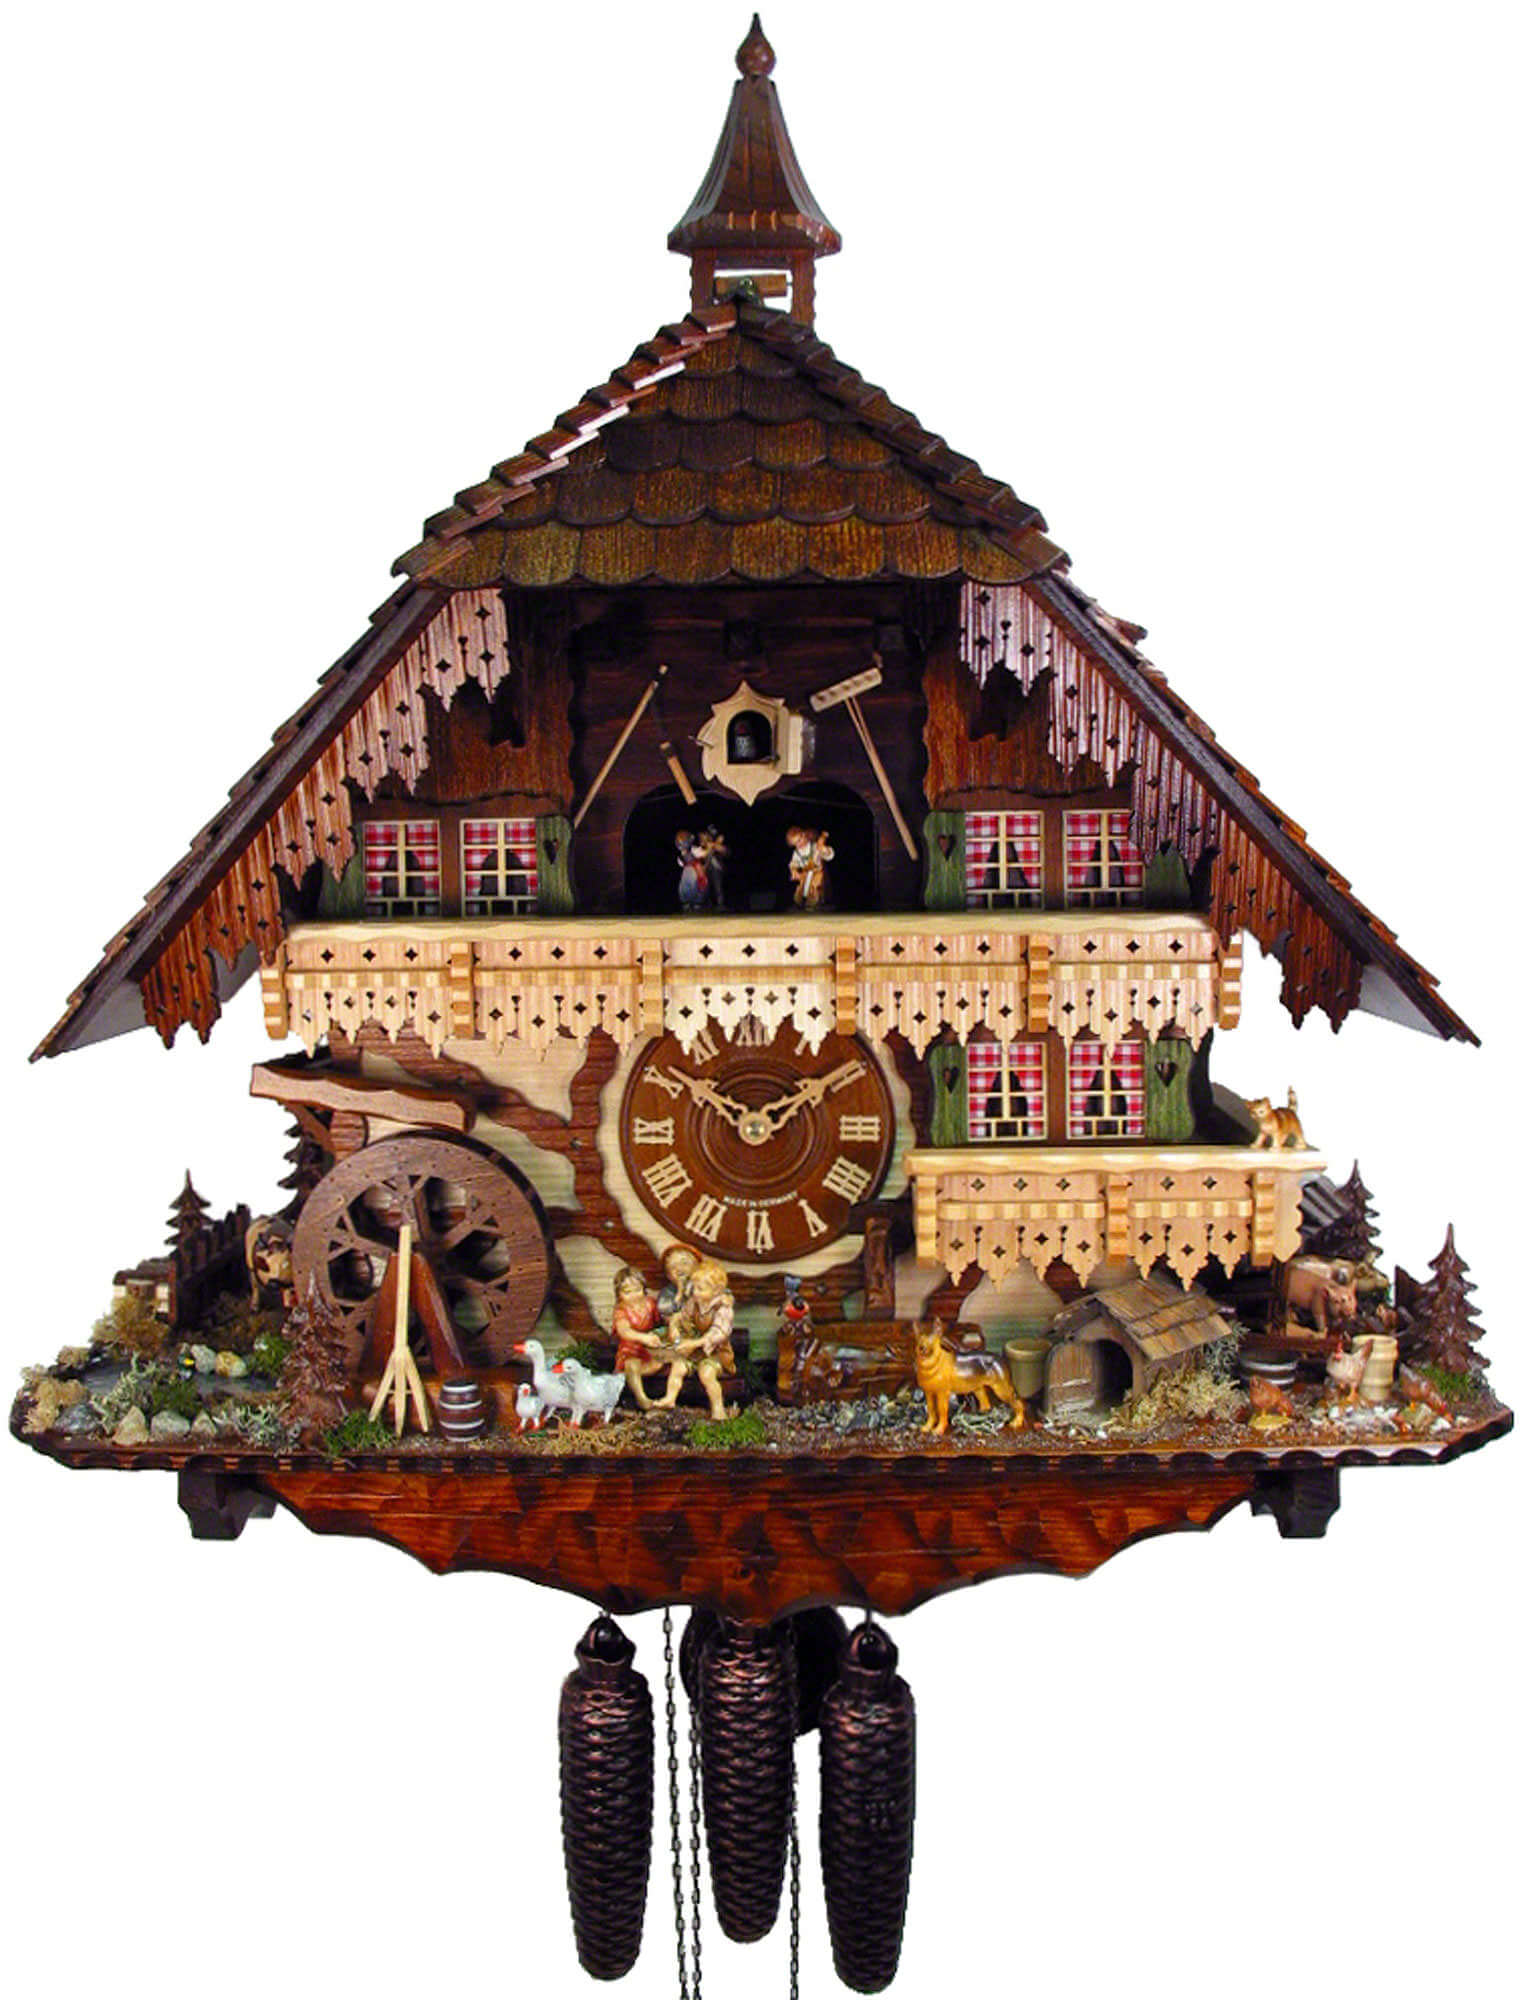 Cuckoo Clock Of The Year Award Winners The Complete List